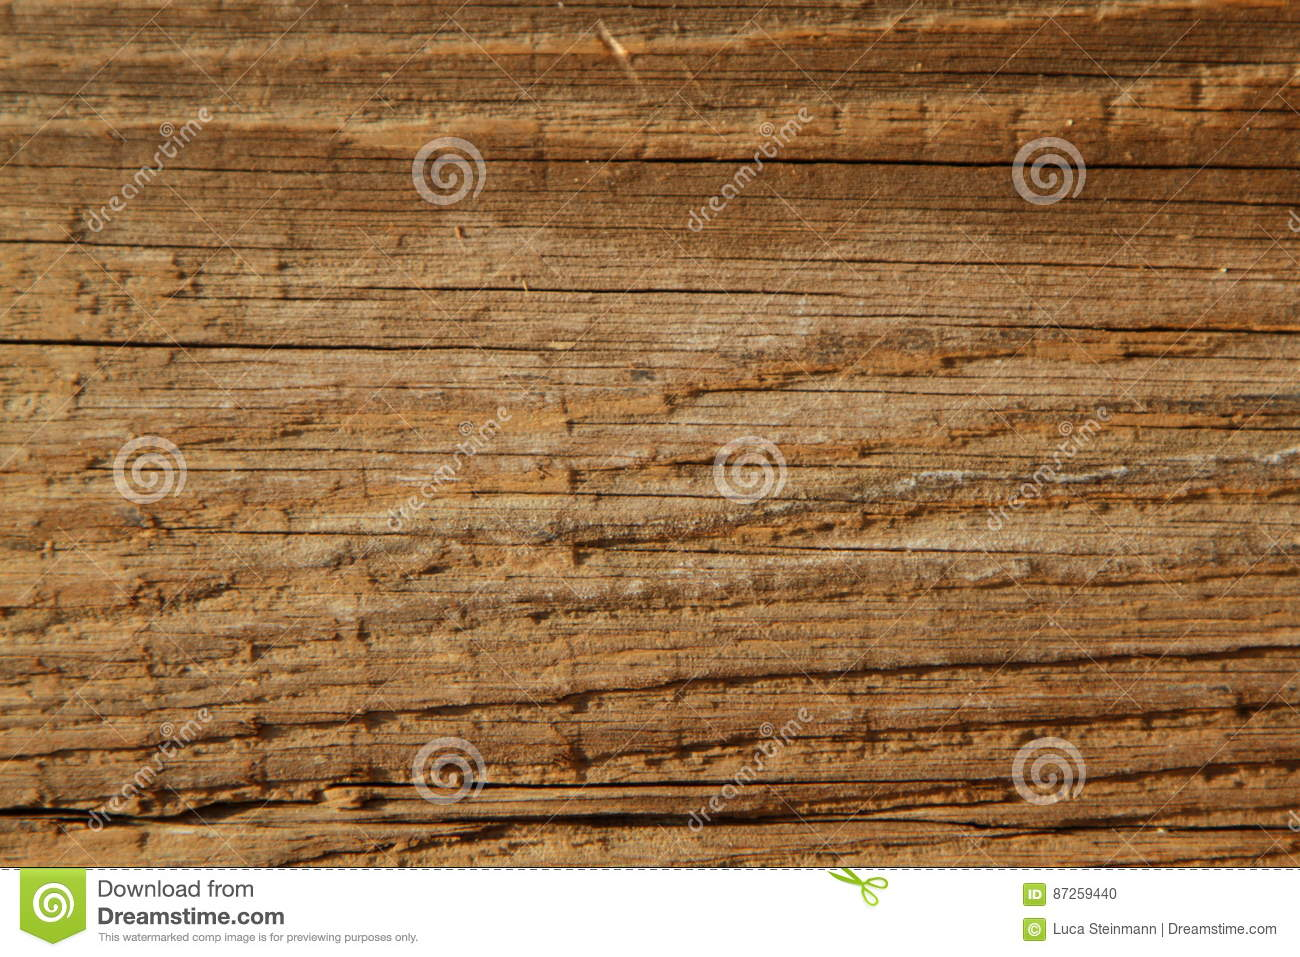 Wooden texture in antique look